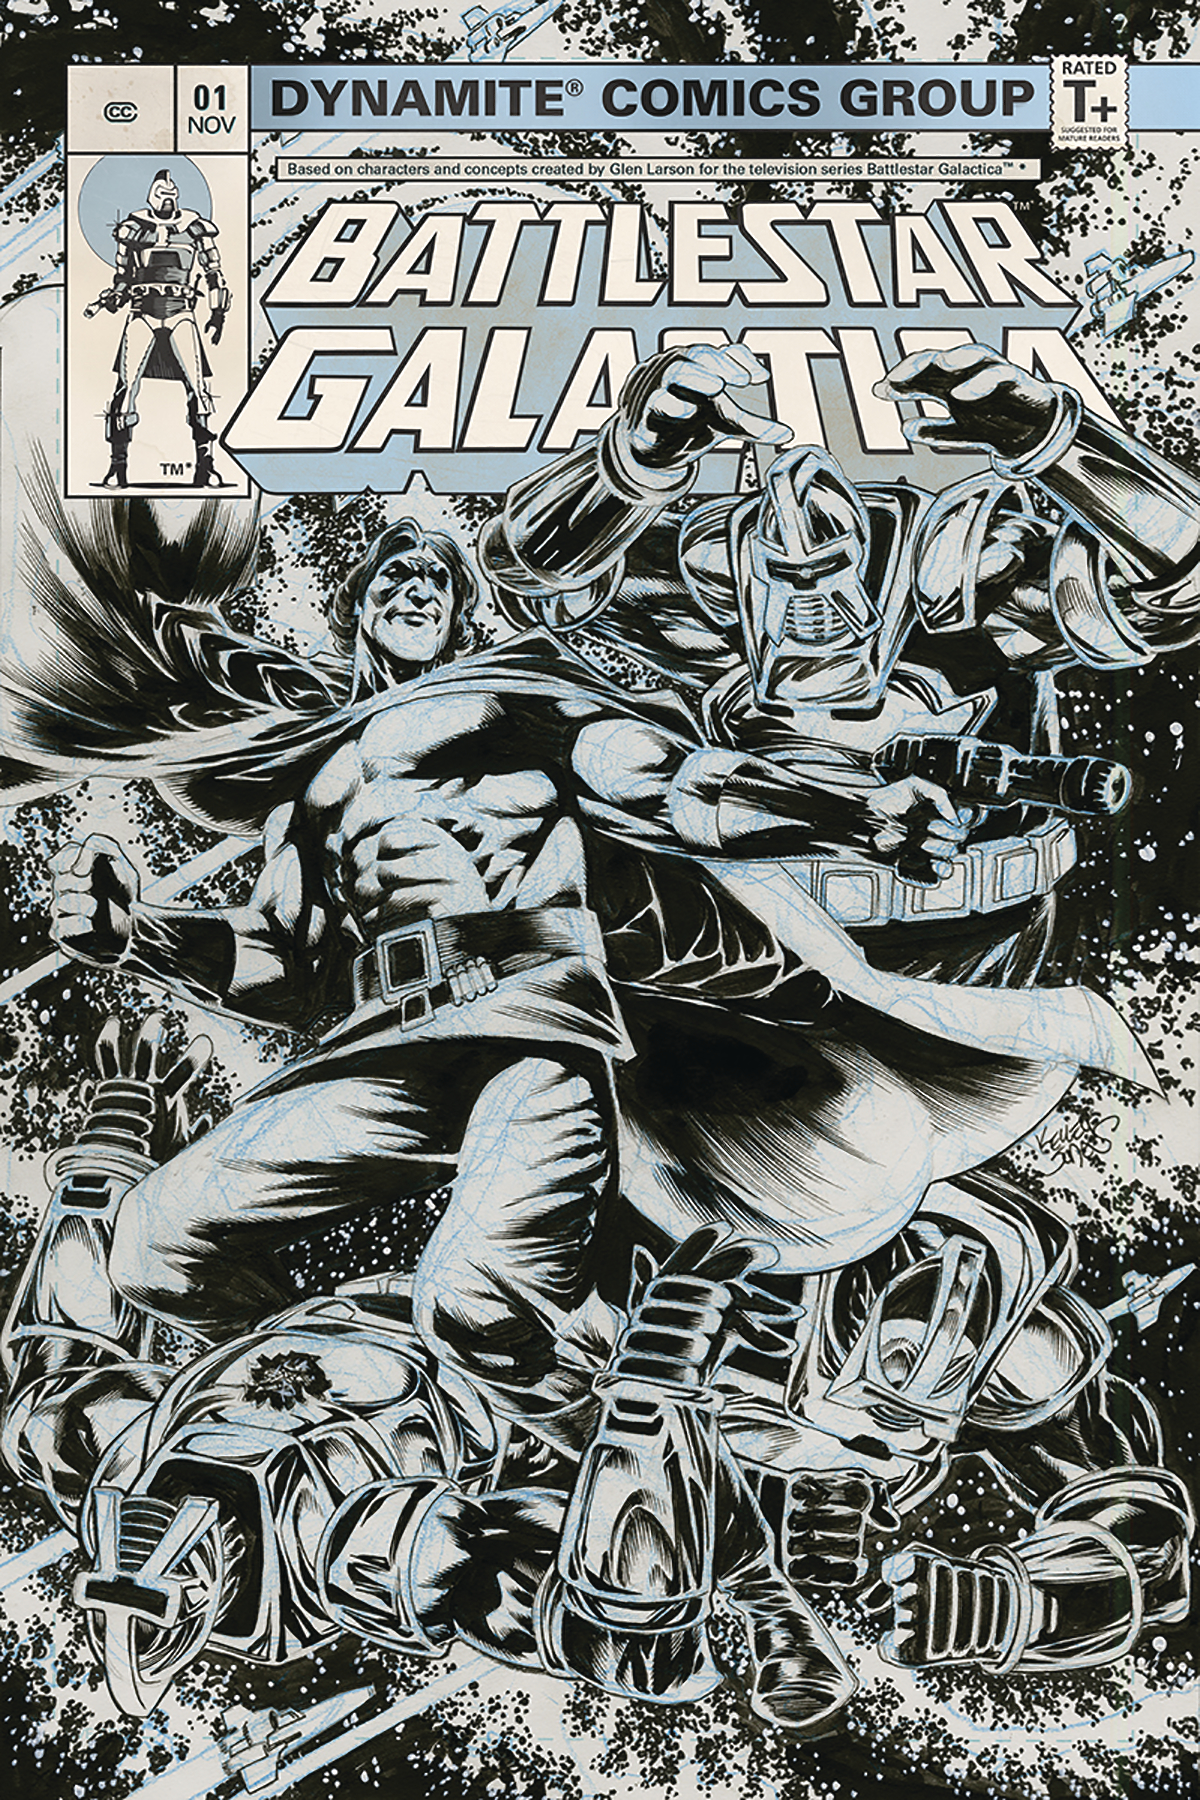 BATTLESTAR GALACTICA CLASSIC #1 25 COPY JONES B&W INCV